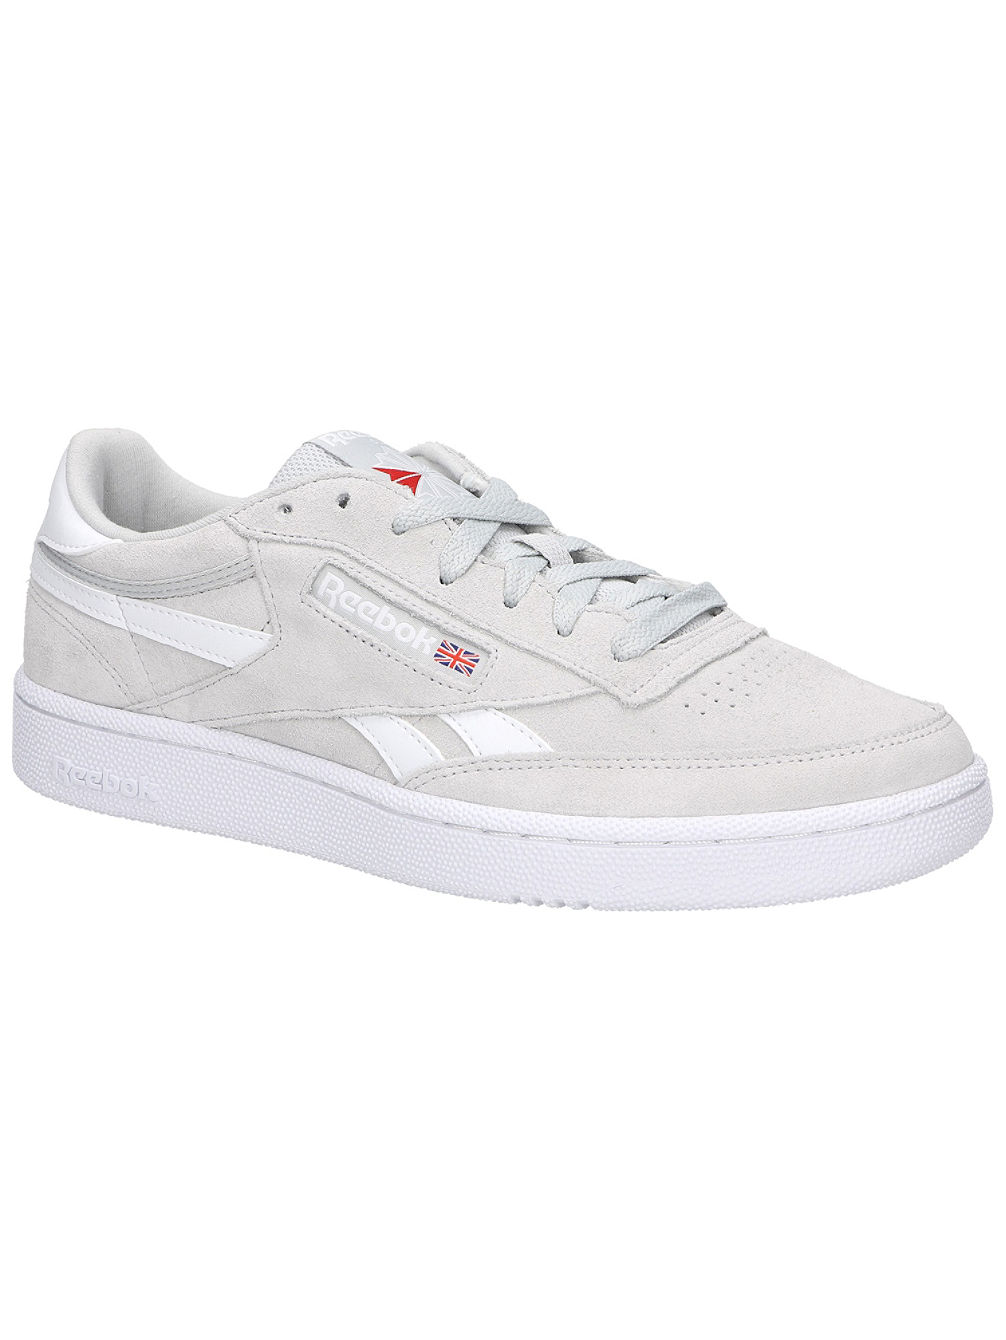 91992a705a9 Buy Reebok Revenge Plus Sneakers online at blue-tomato.com